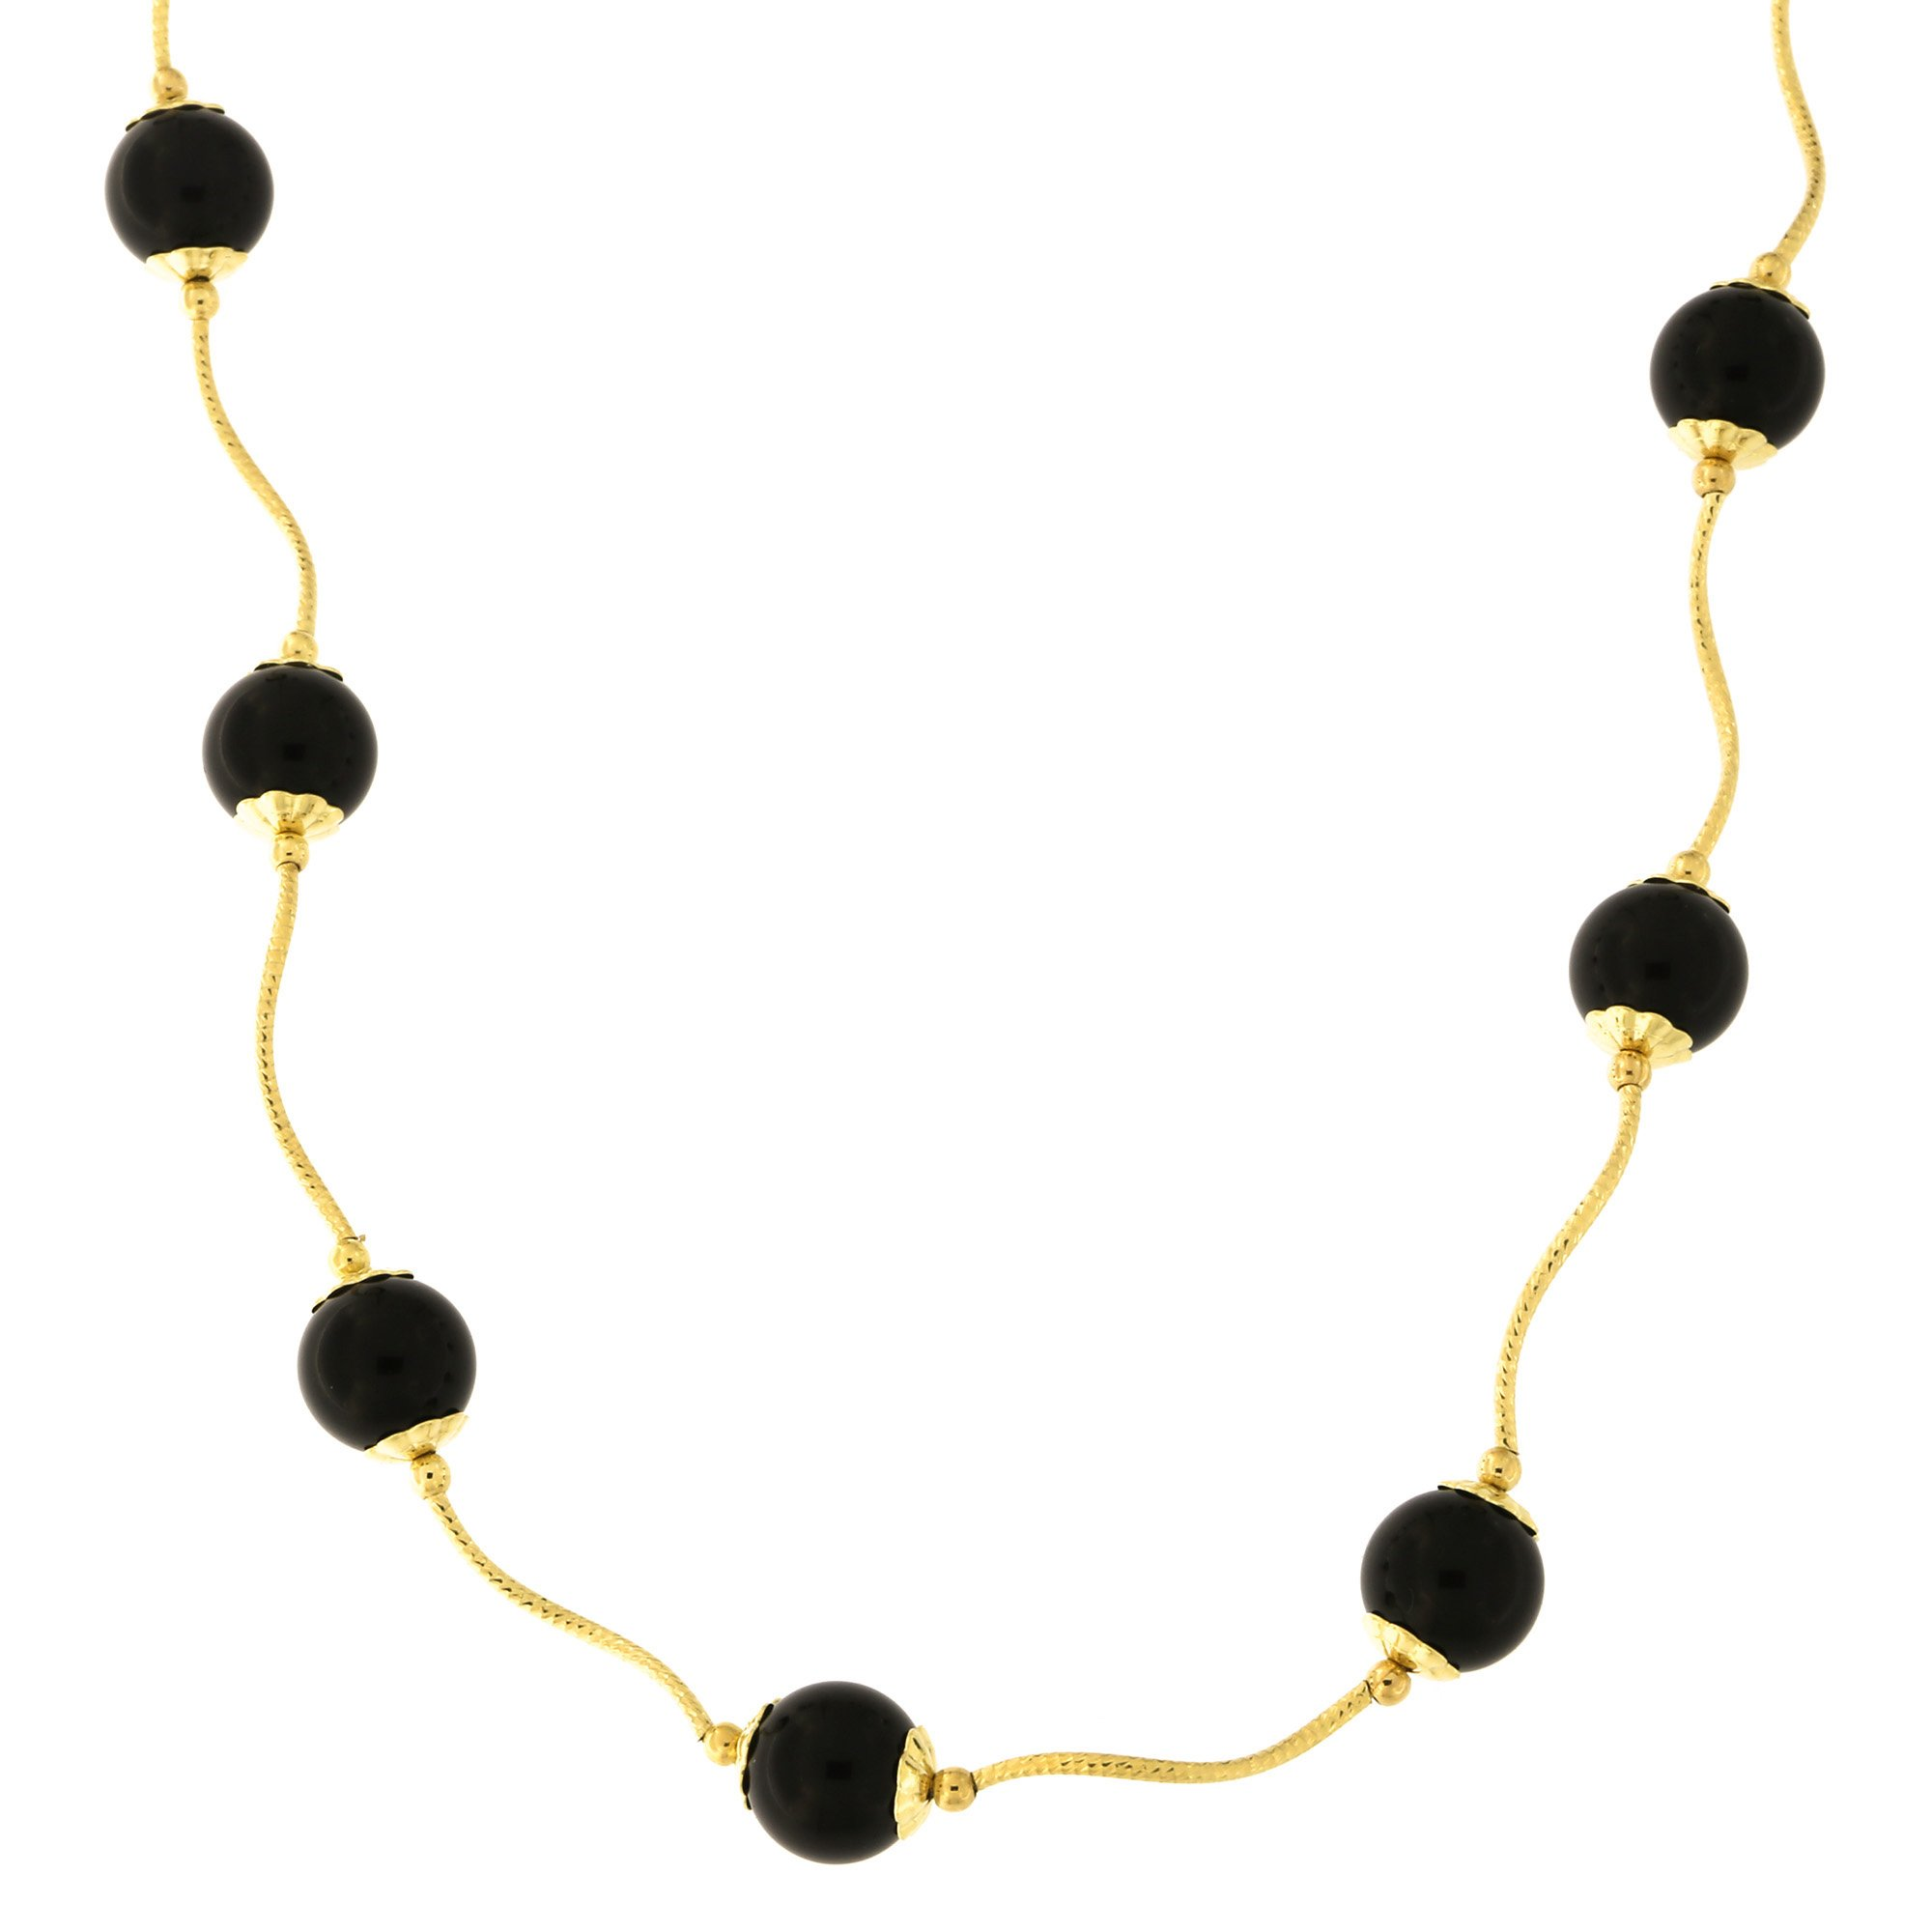 14k Yellow Gold Diamond Cut 8mm Capped Onyx Station Necklace, 18 inches